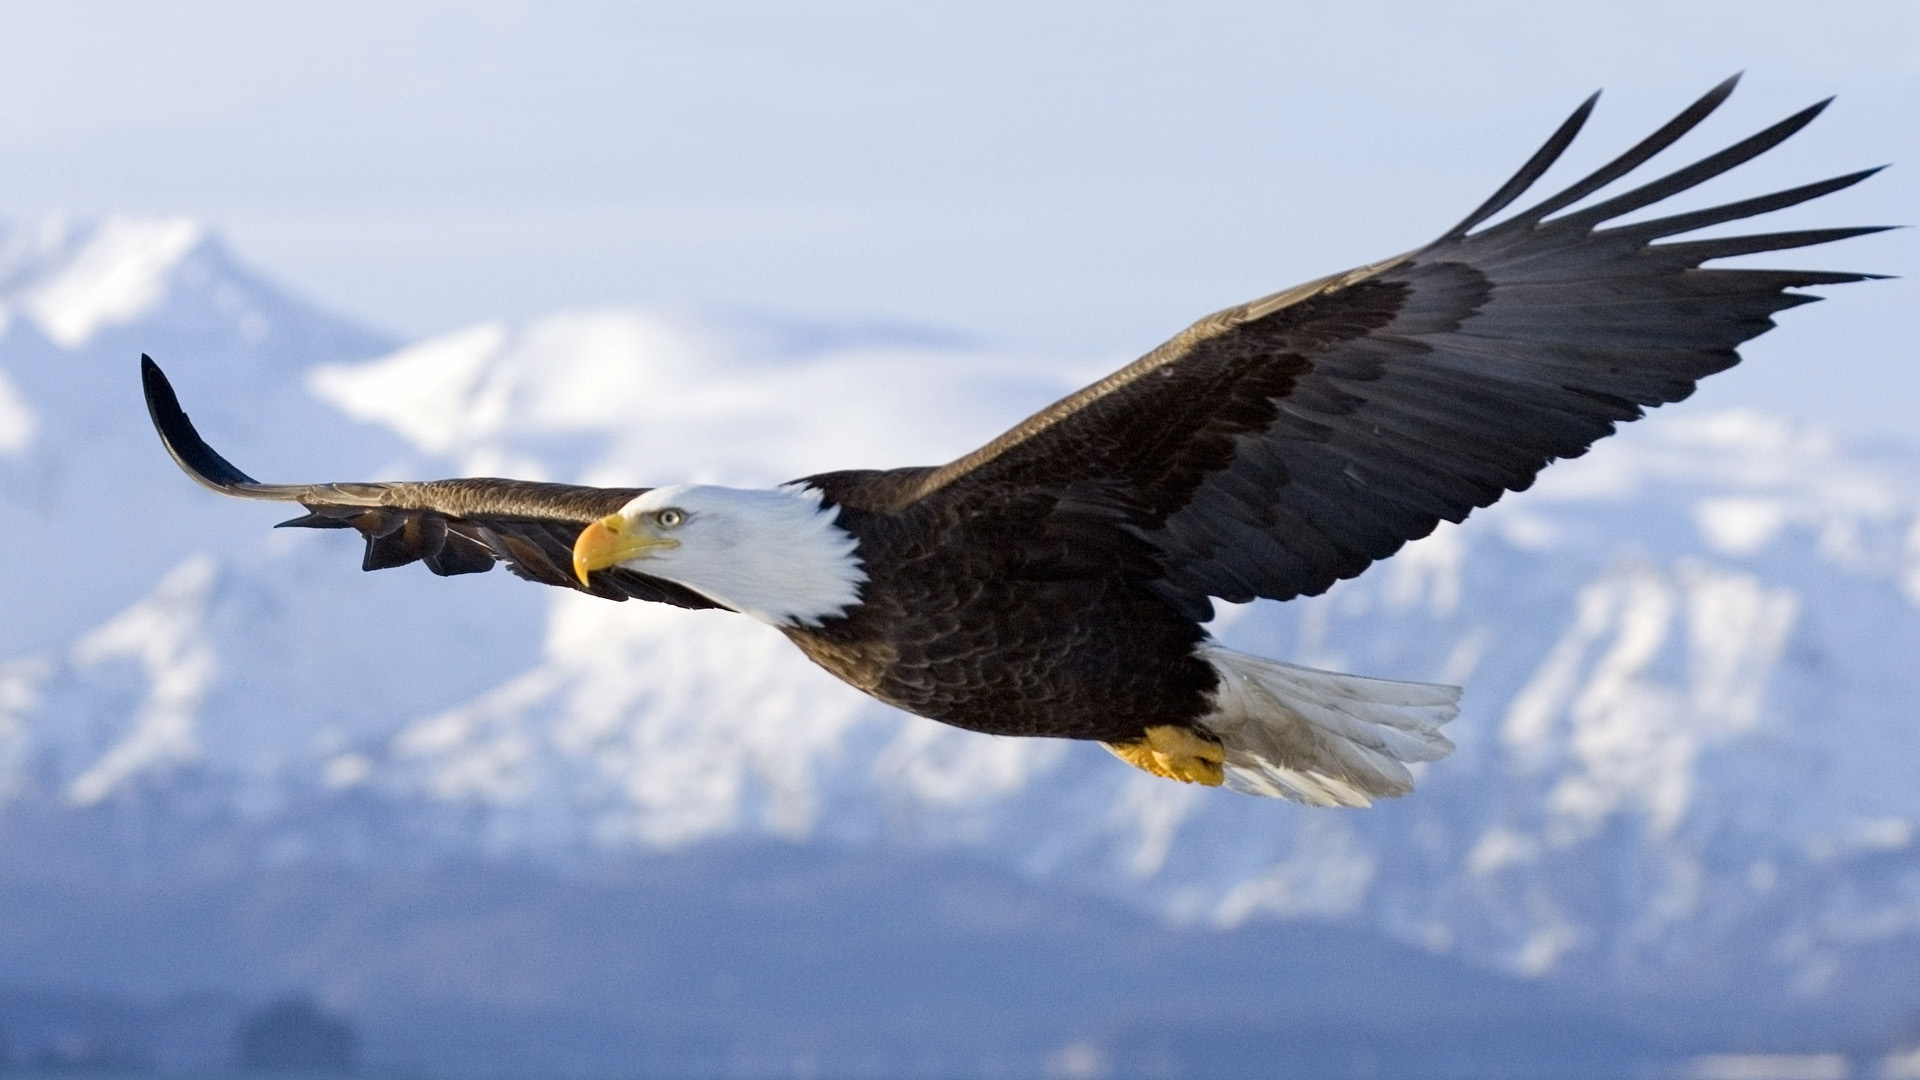 Eagle Flying in the Mountains 746.75 Kb